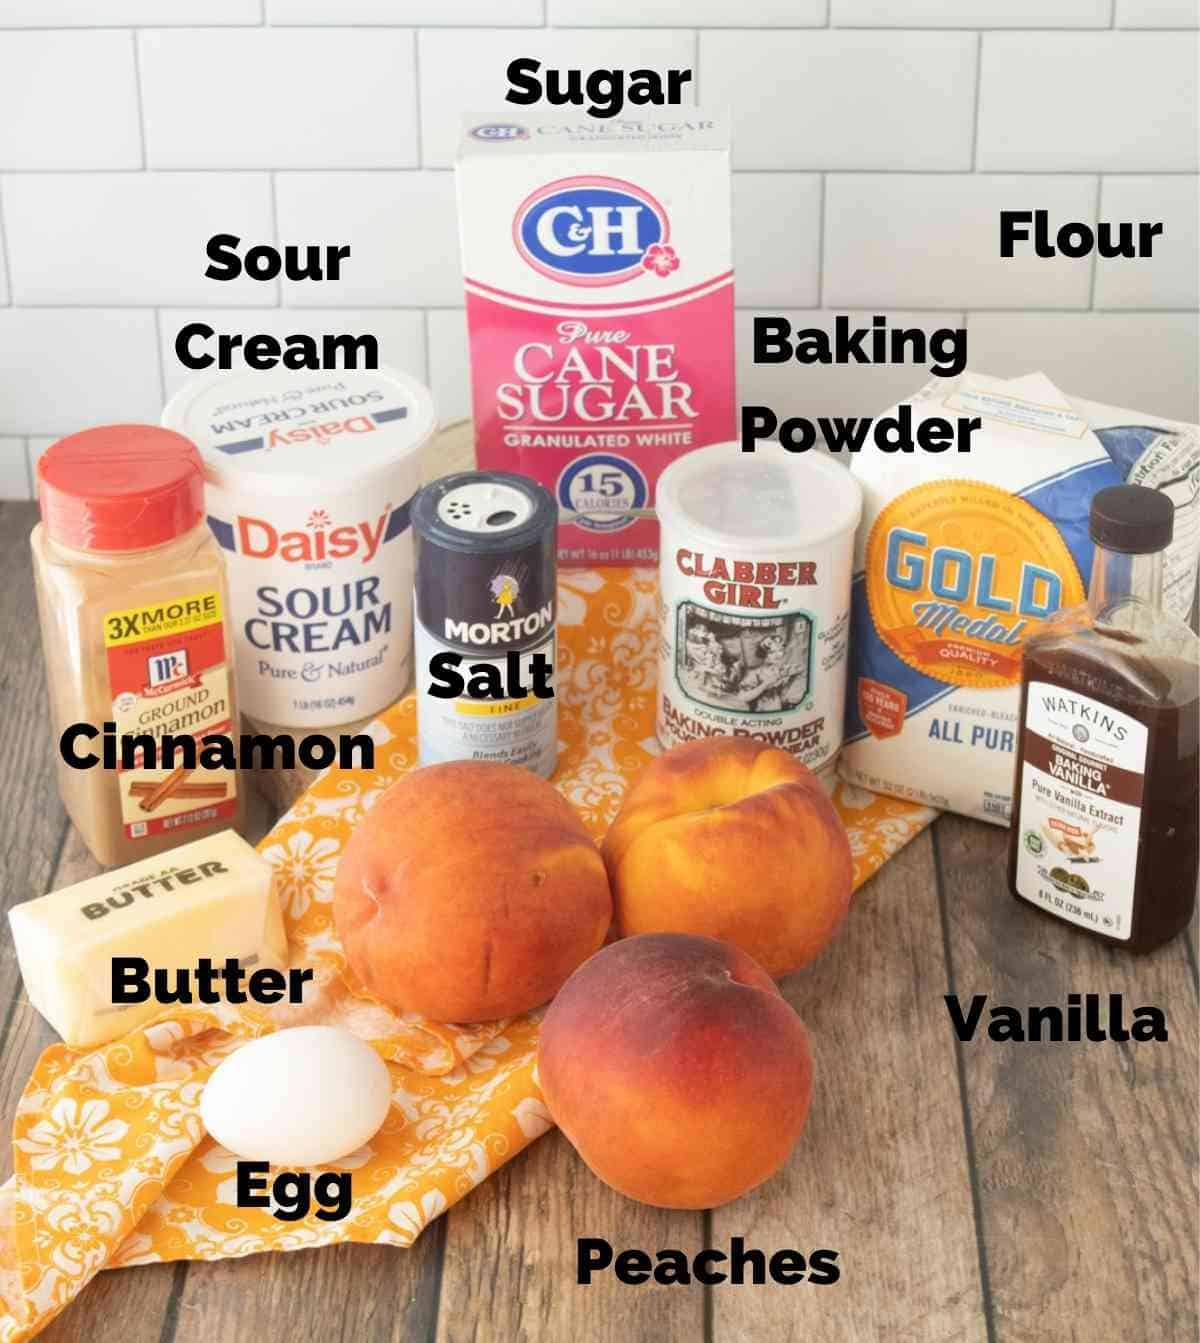 Ingredients for this peach pie.